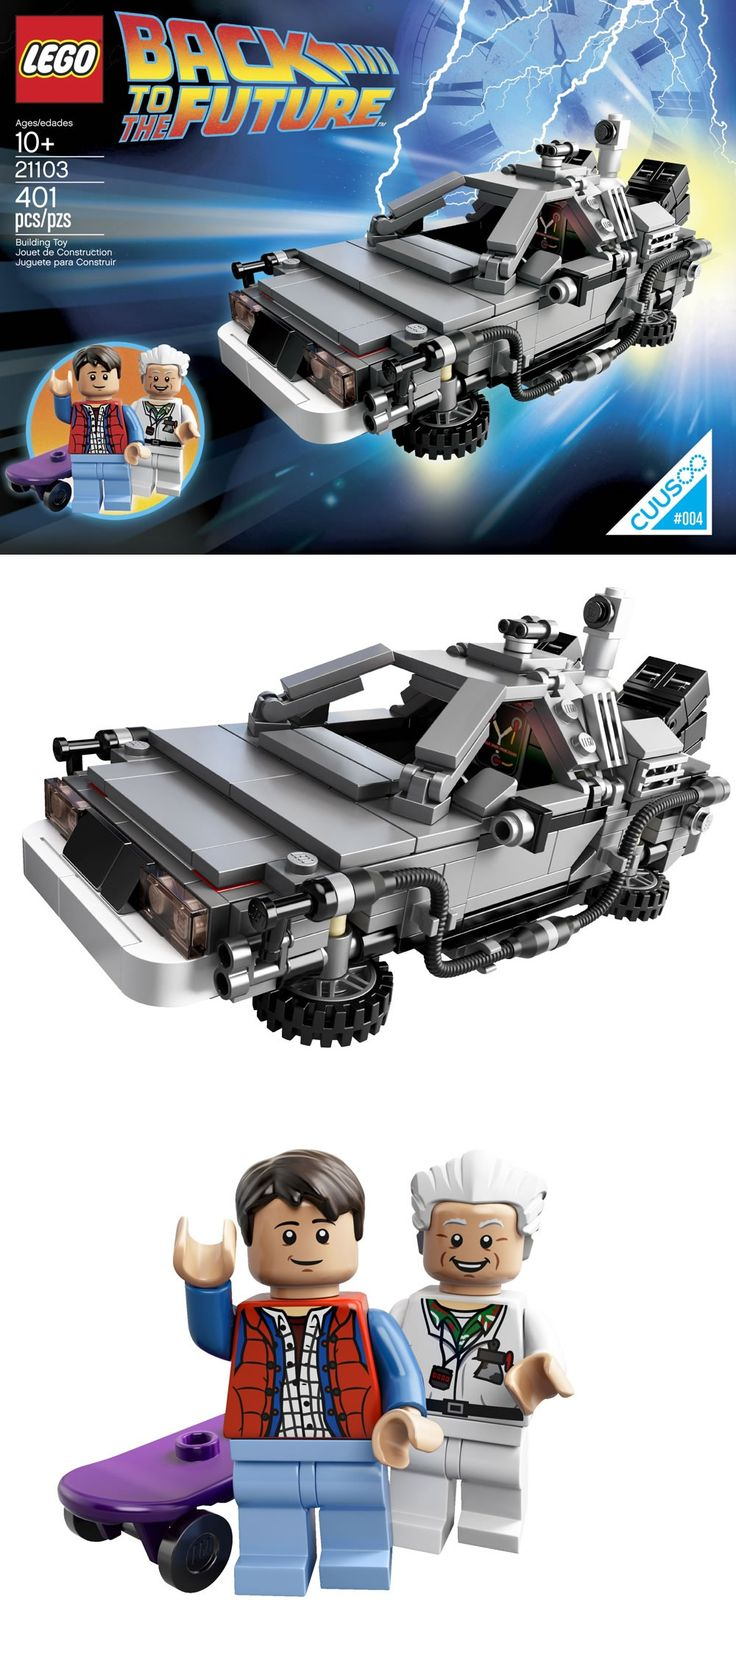 LEGO 21103 Back to the Future official images...1st Lego I built to celebrate new position w Microsoft